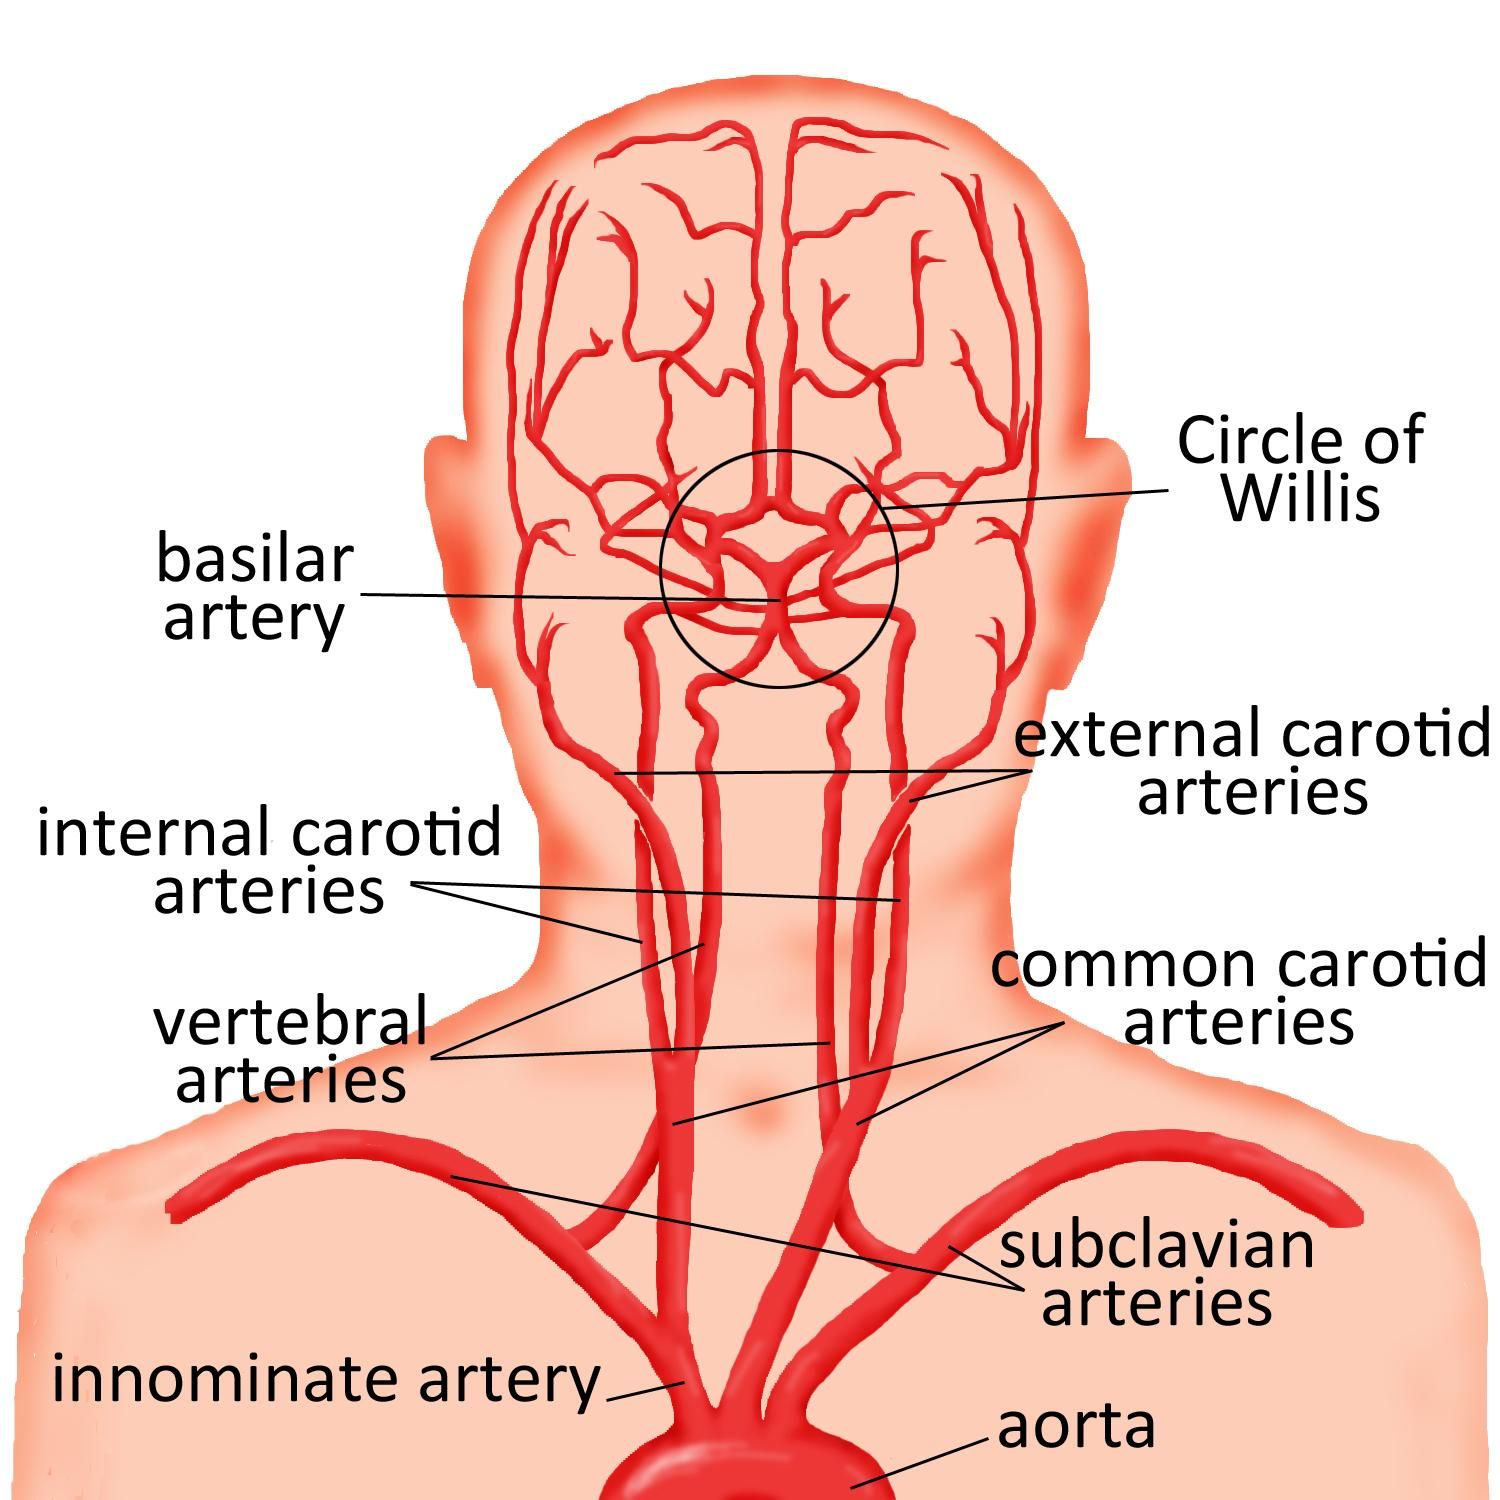 carotid artery - Google Search | PA school life | Pinterest | Google ...